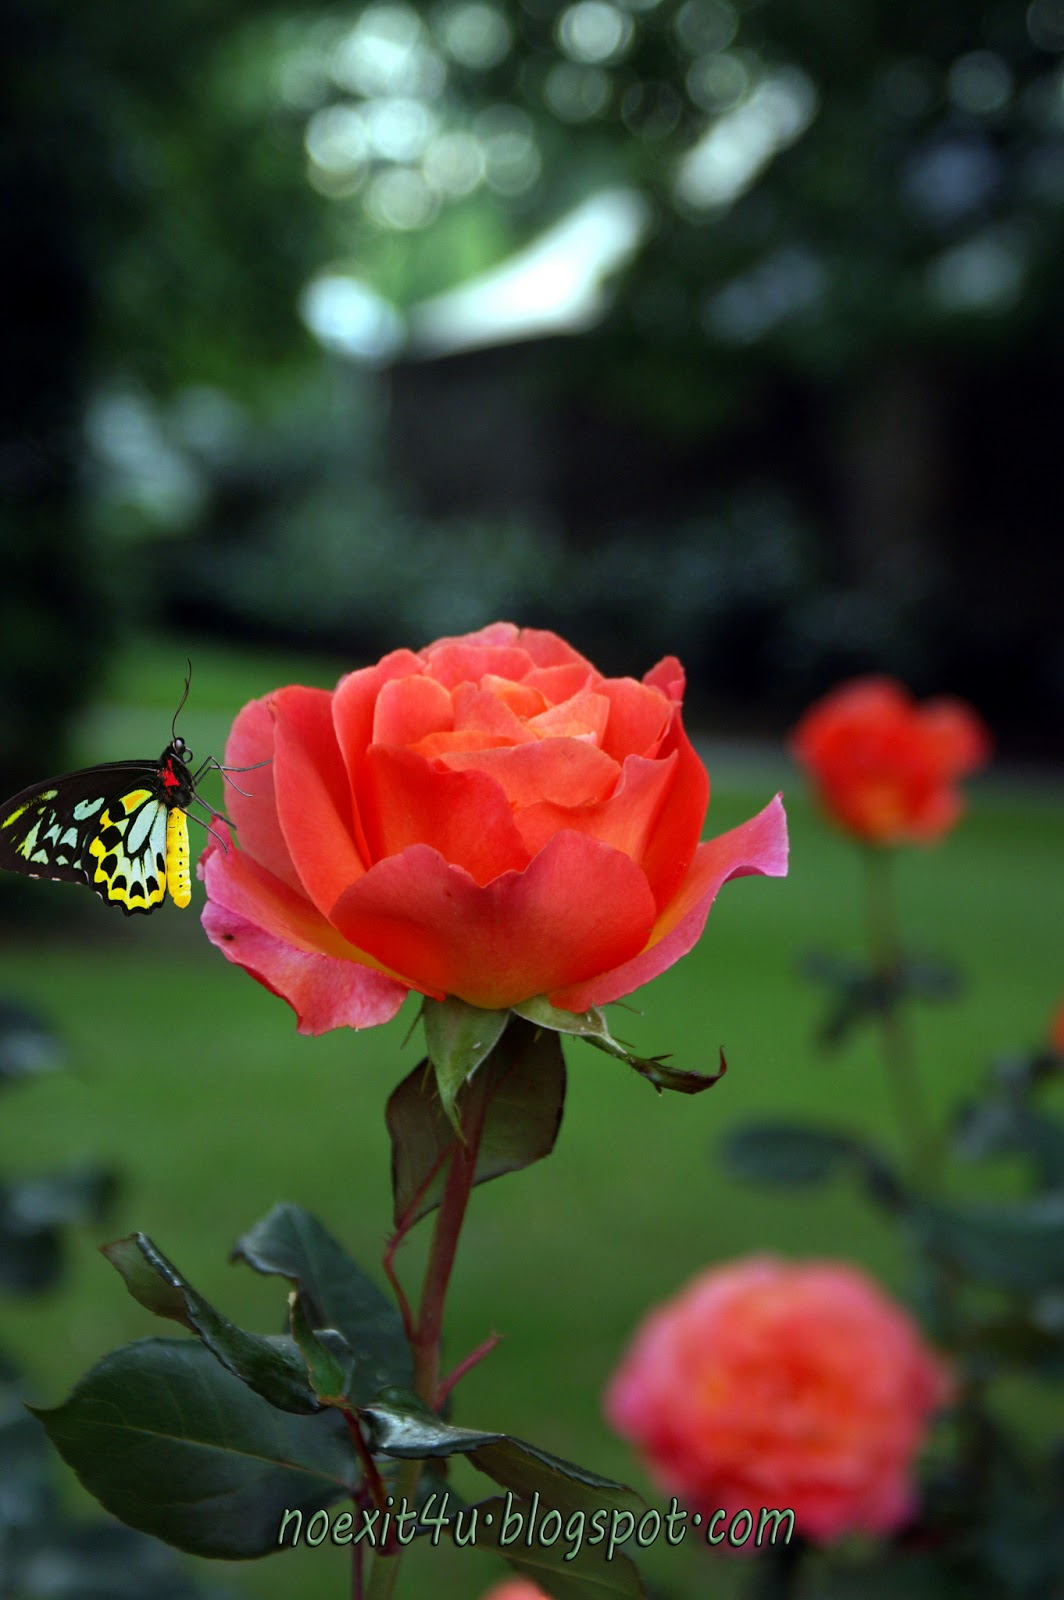 Wallpaper Good Night Quotes Hd Rose And Butterfly Wallpaper Noexit4u Com